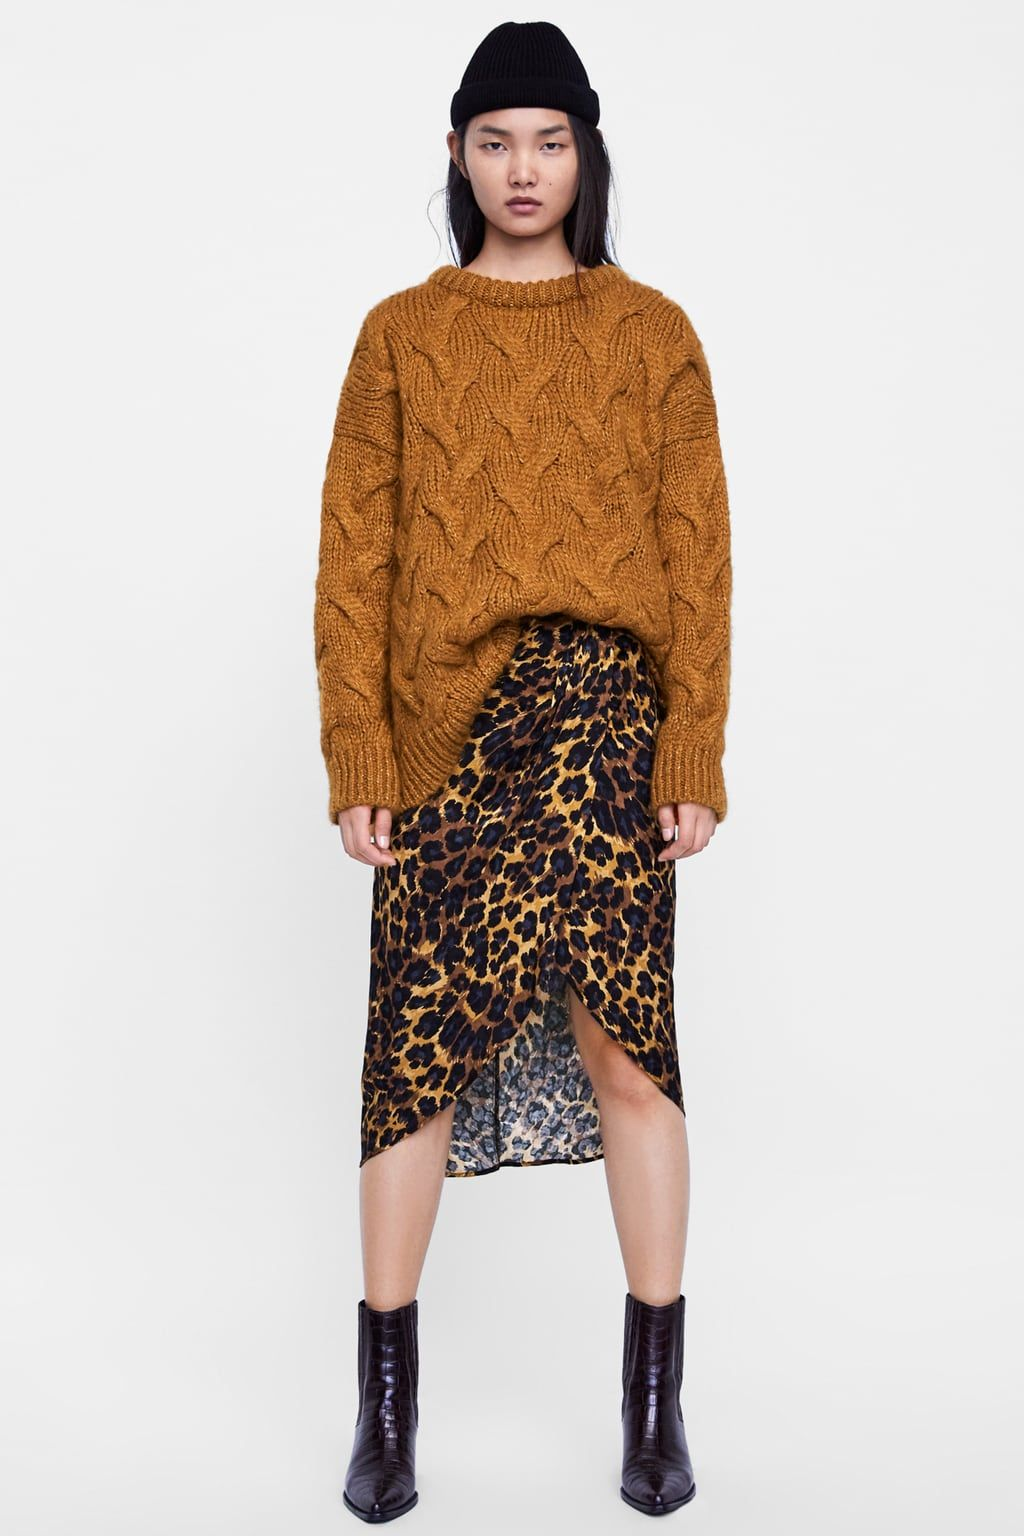 abba841d4f FALDA ESTAMPADO ANIMAL in 2019 | Outfits | Animal print skirt ...